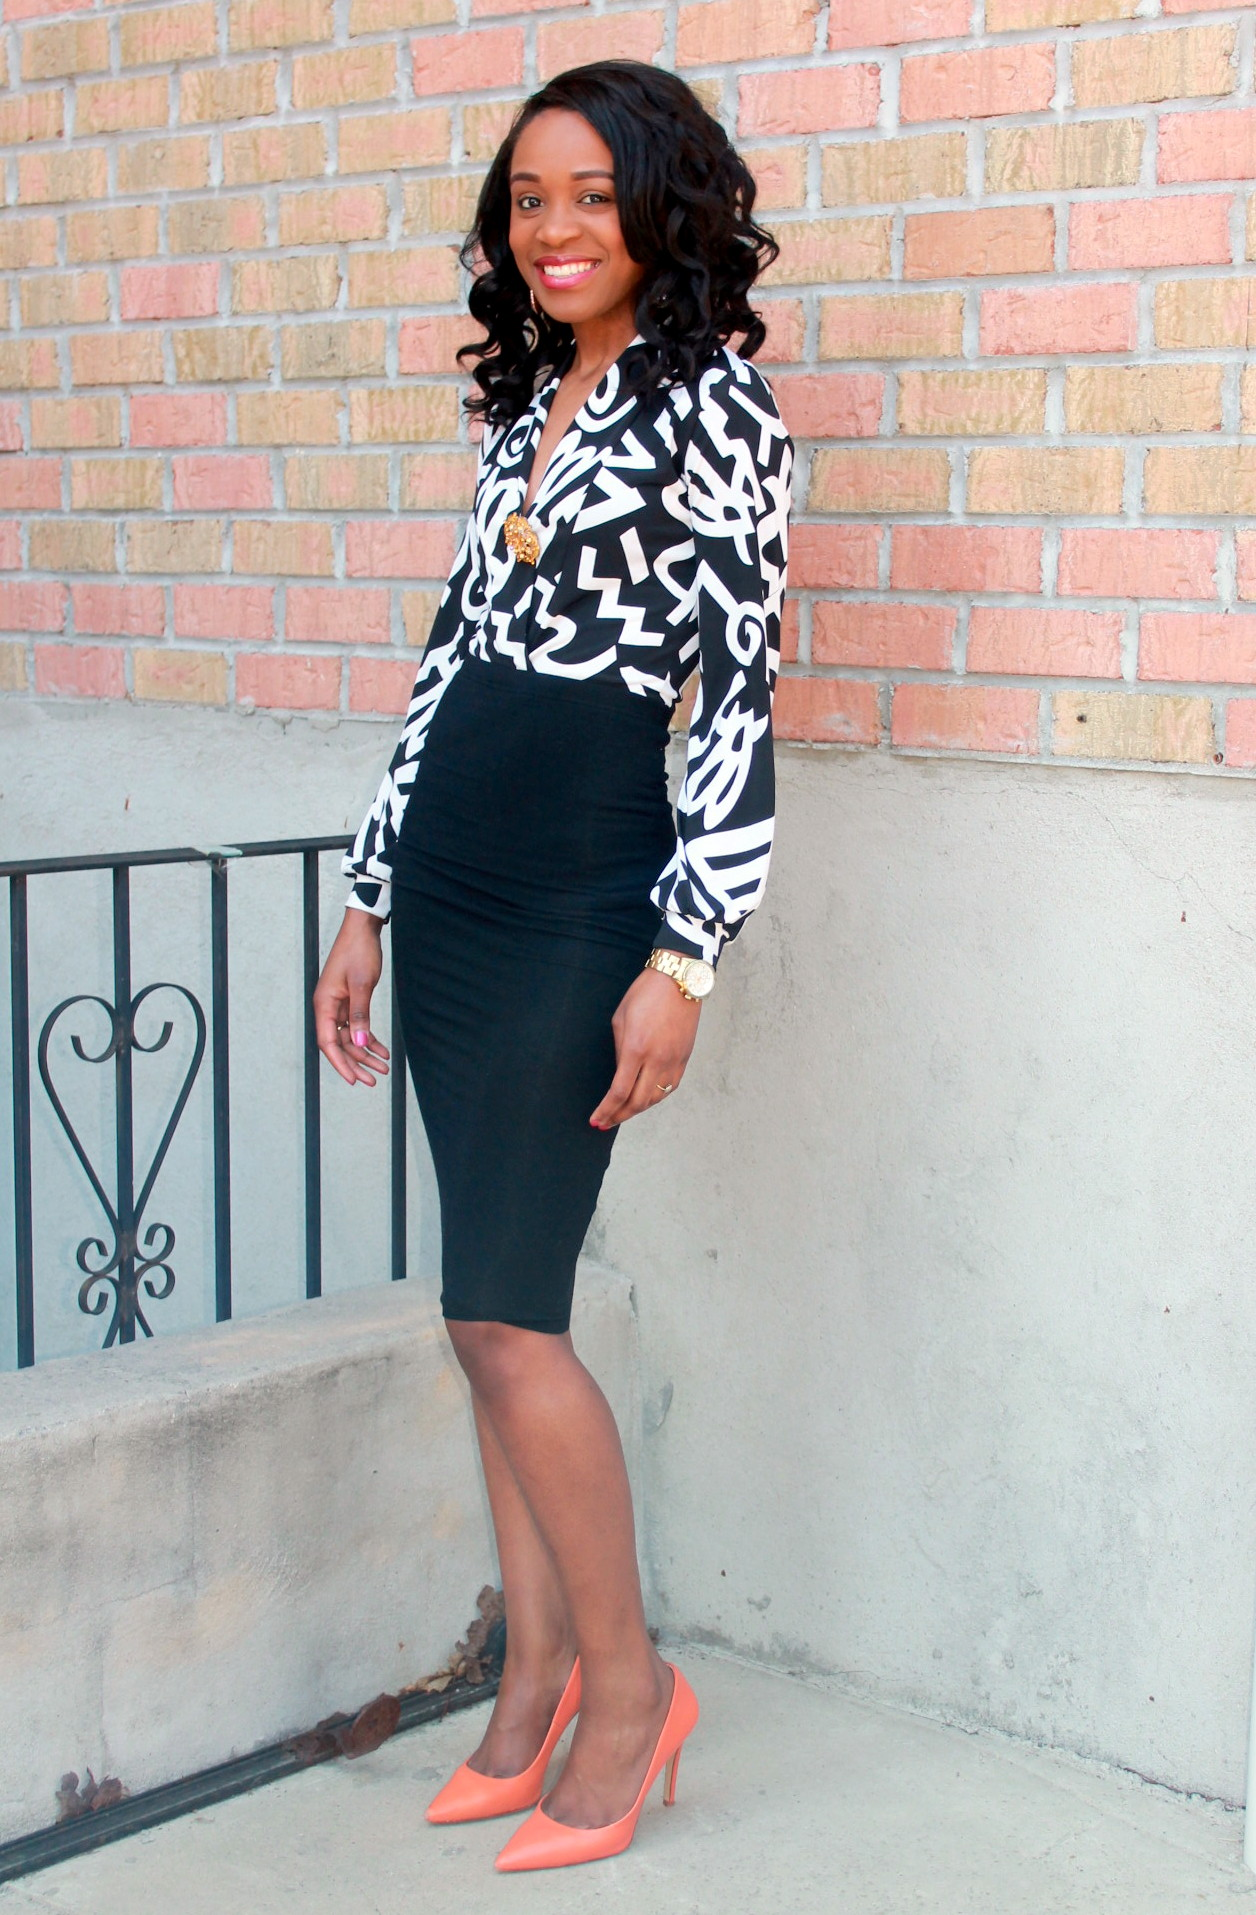 Black and white + orange pumps (7)